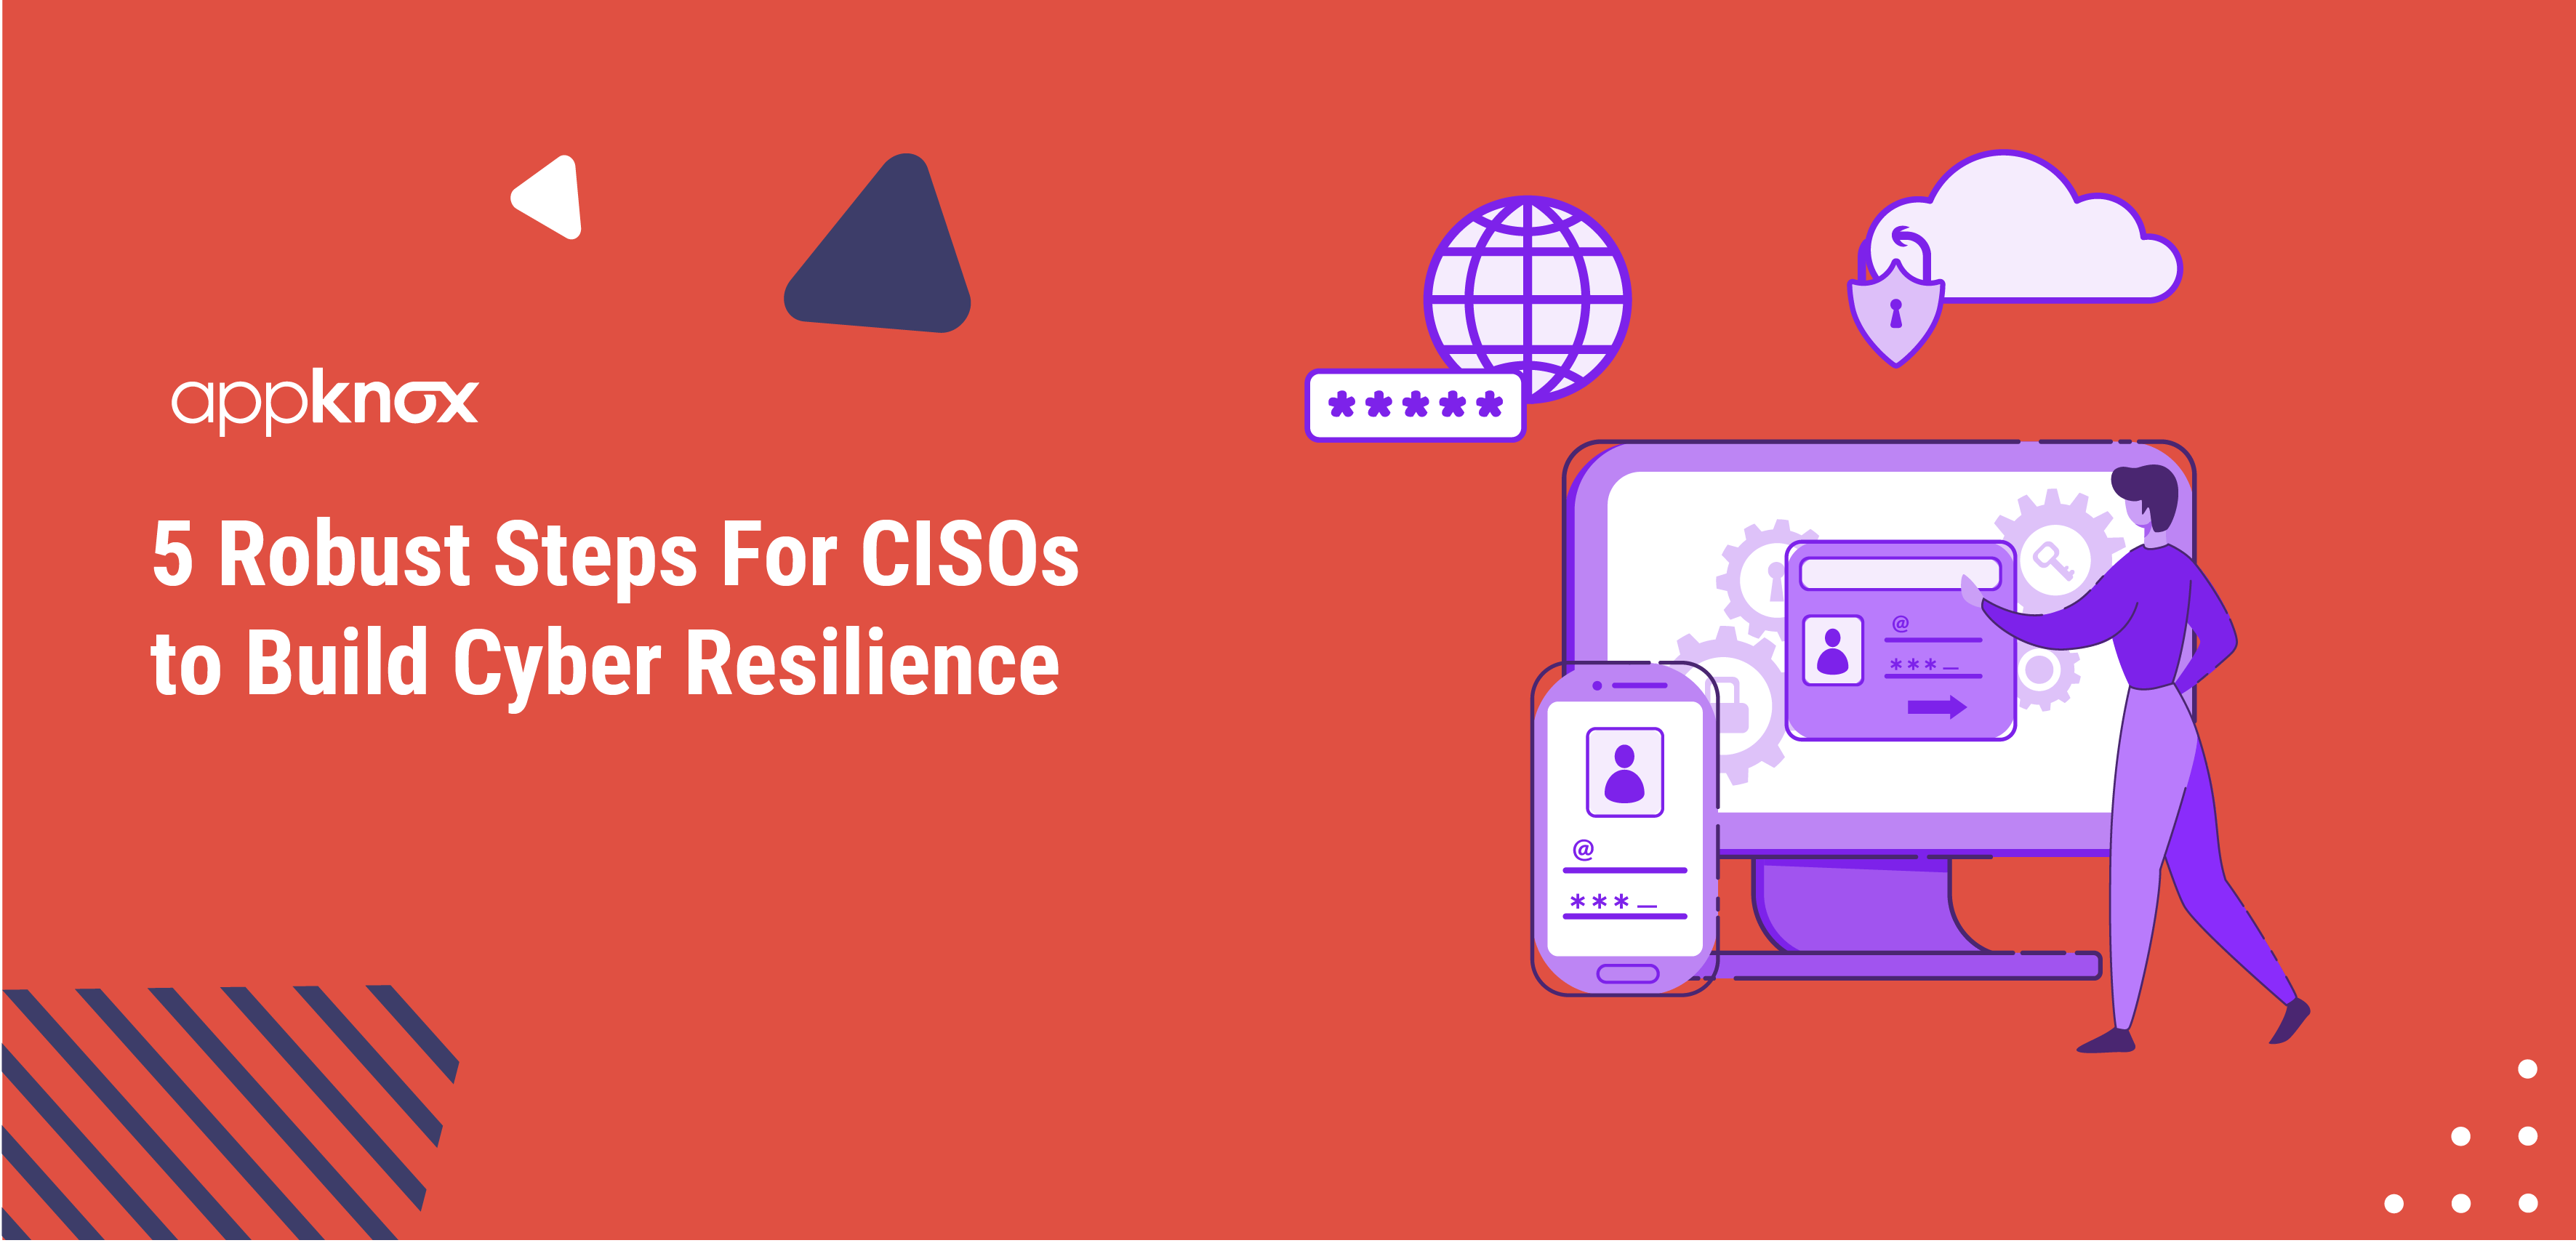 5 Robust Steps For CISOs to Build Cyber Resilience